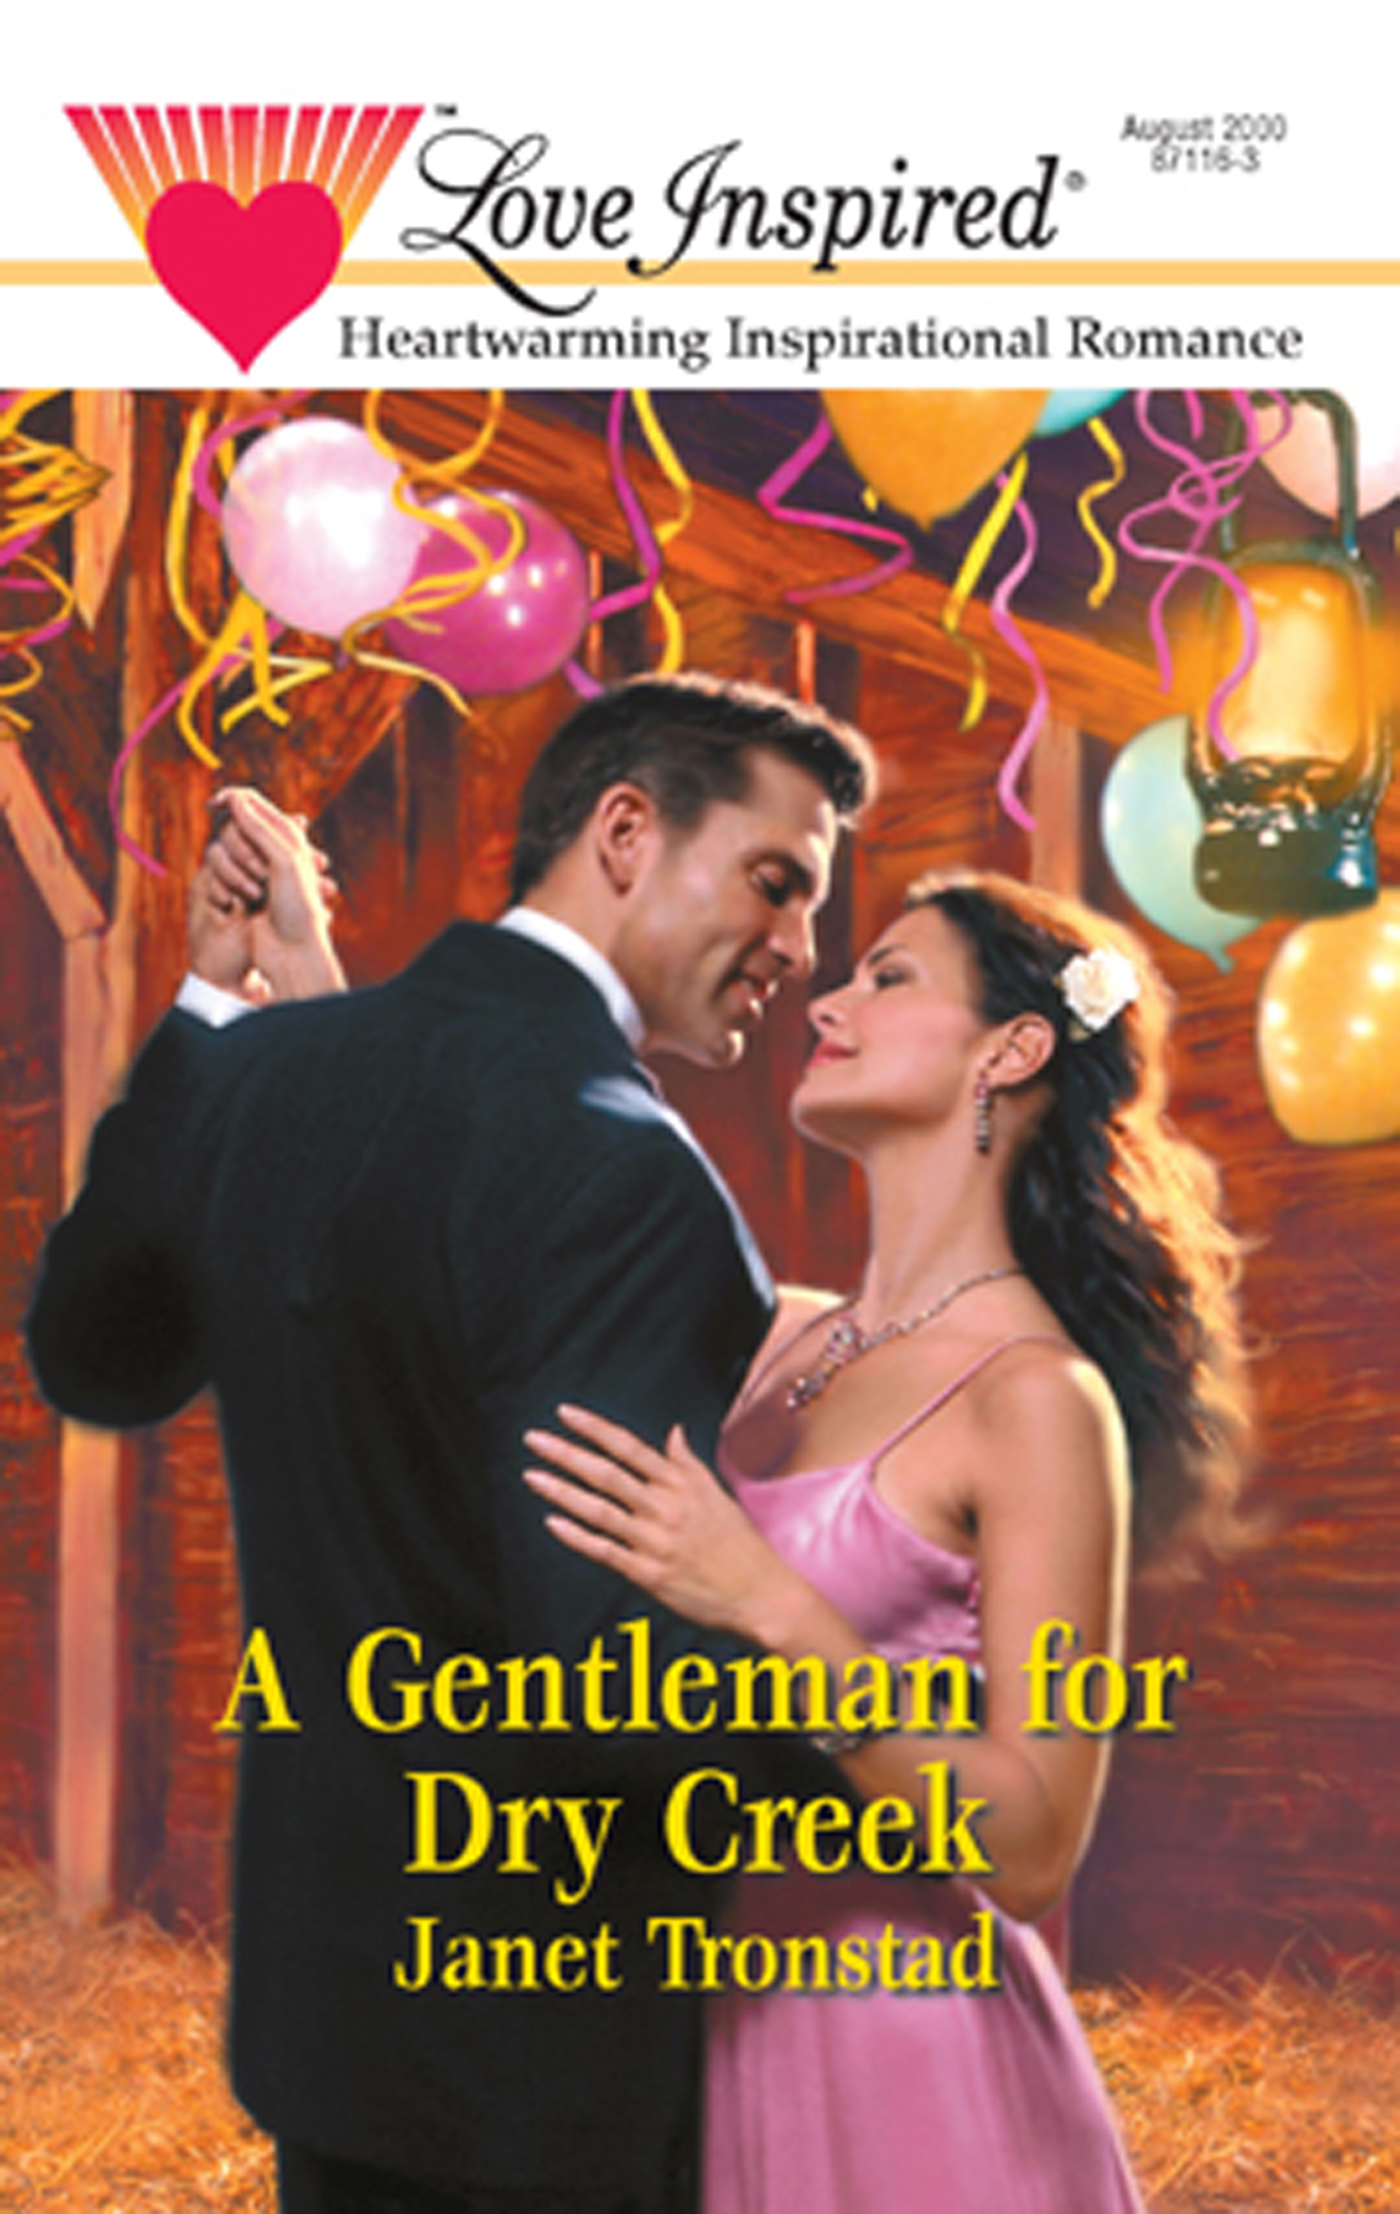 A Gentleman for Dry Creek (Mills & Boon Love Inspired)